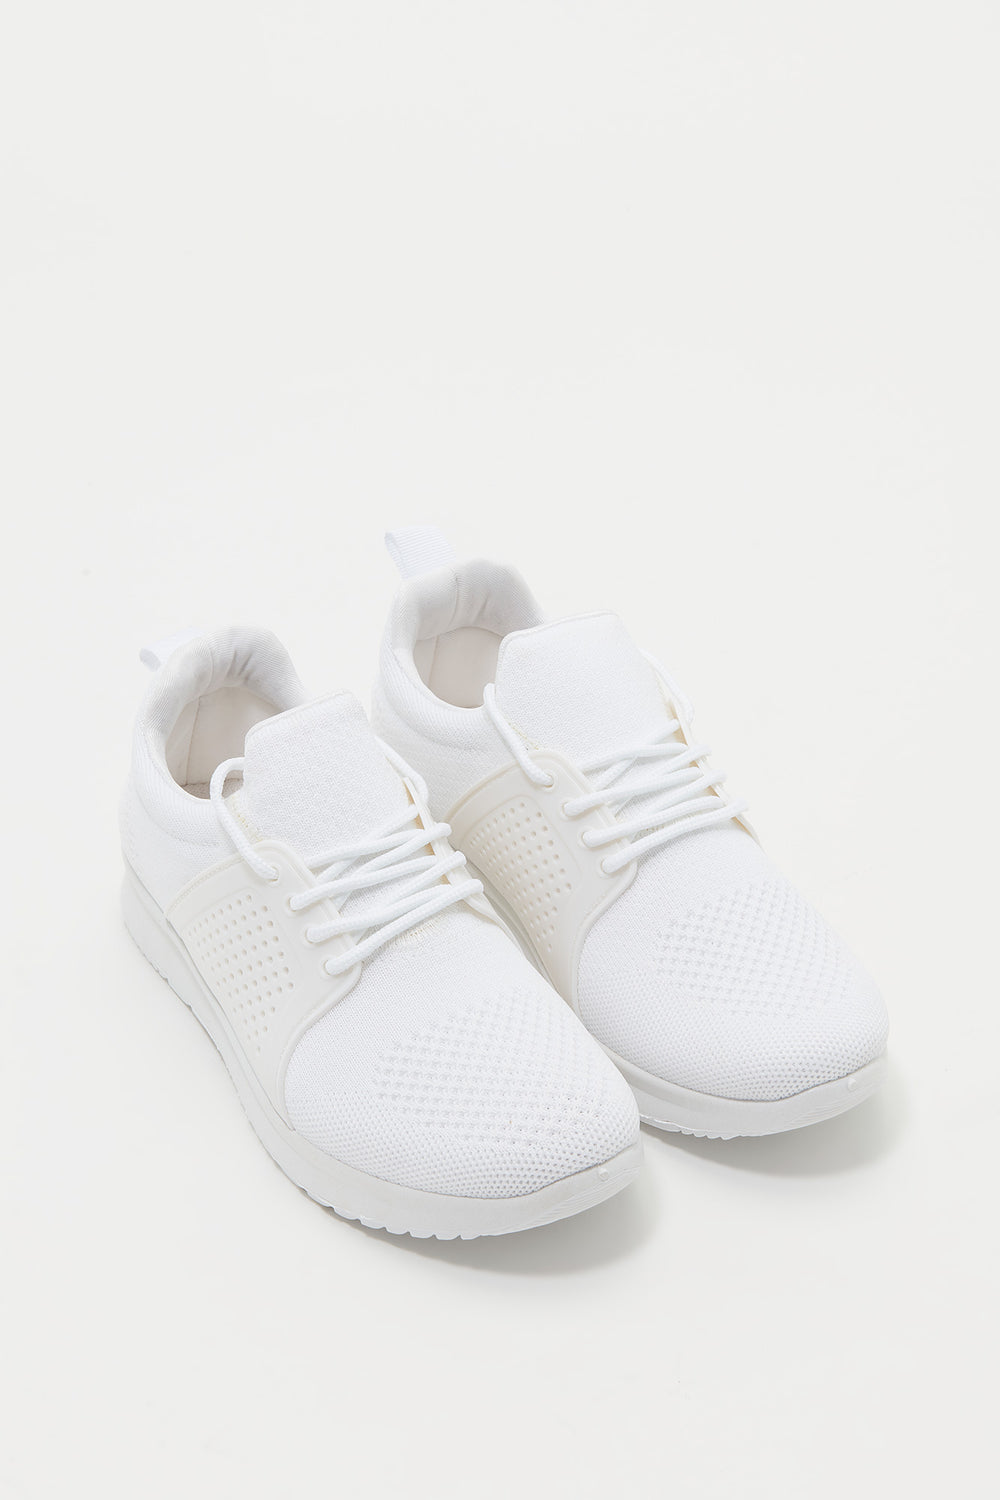 Knit Lace-Up Foam Insole Sneaker White